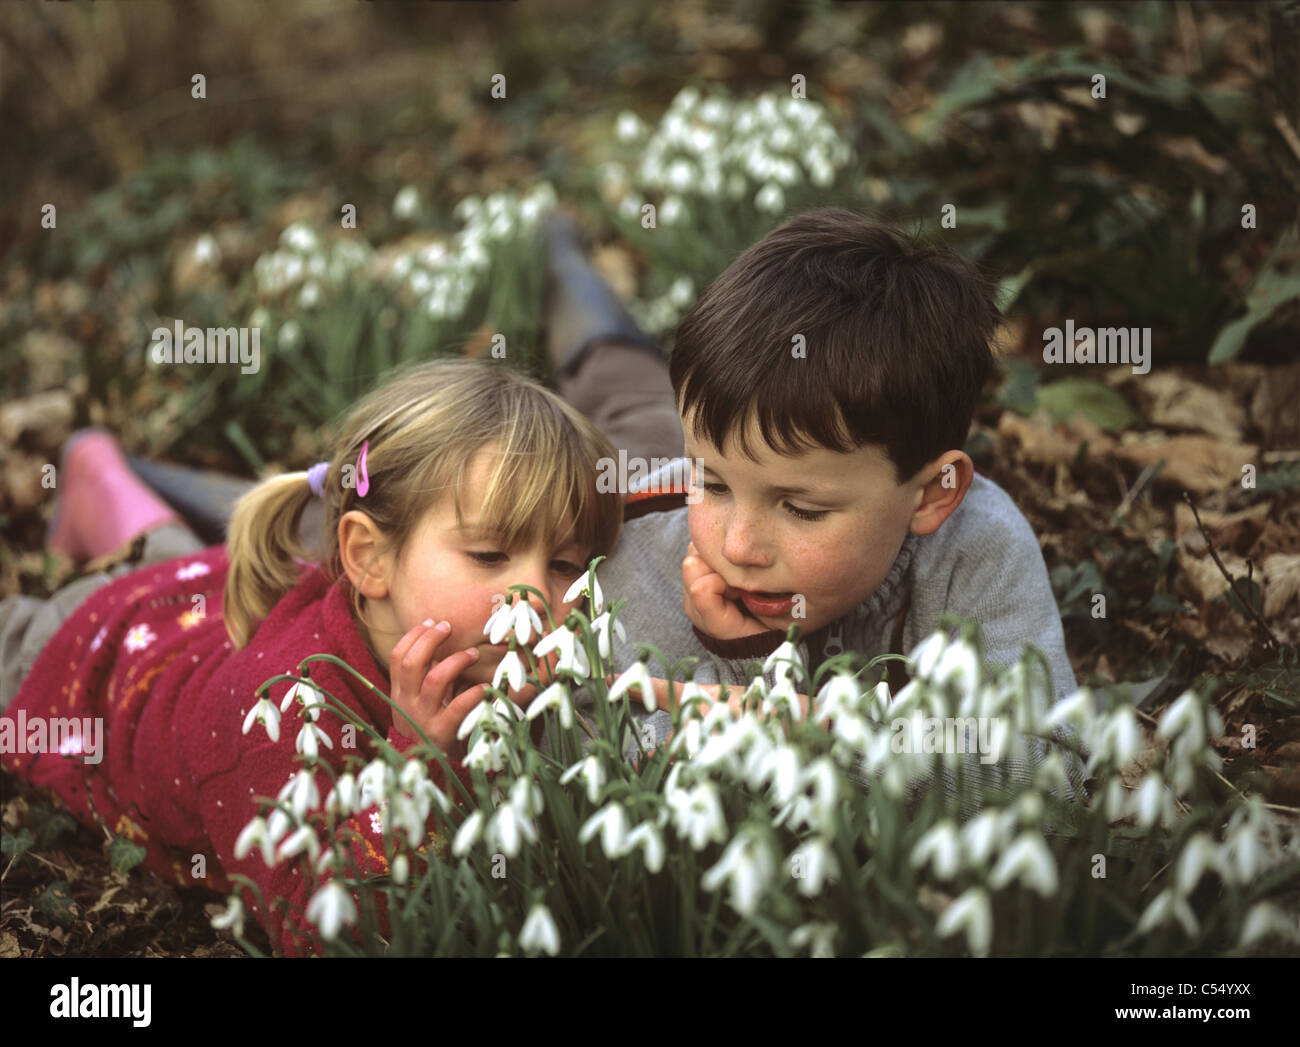 children-looking-at-snowdrops-in-a-wood-